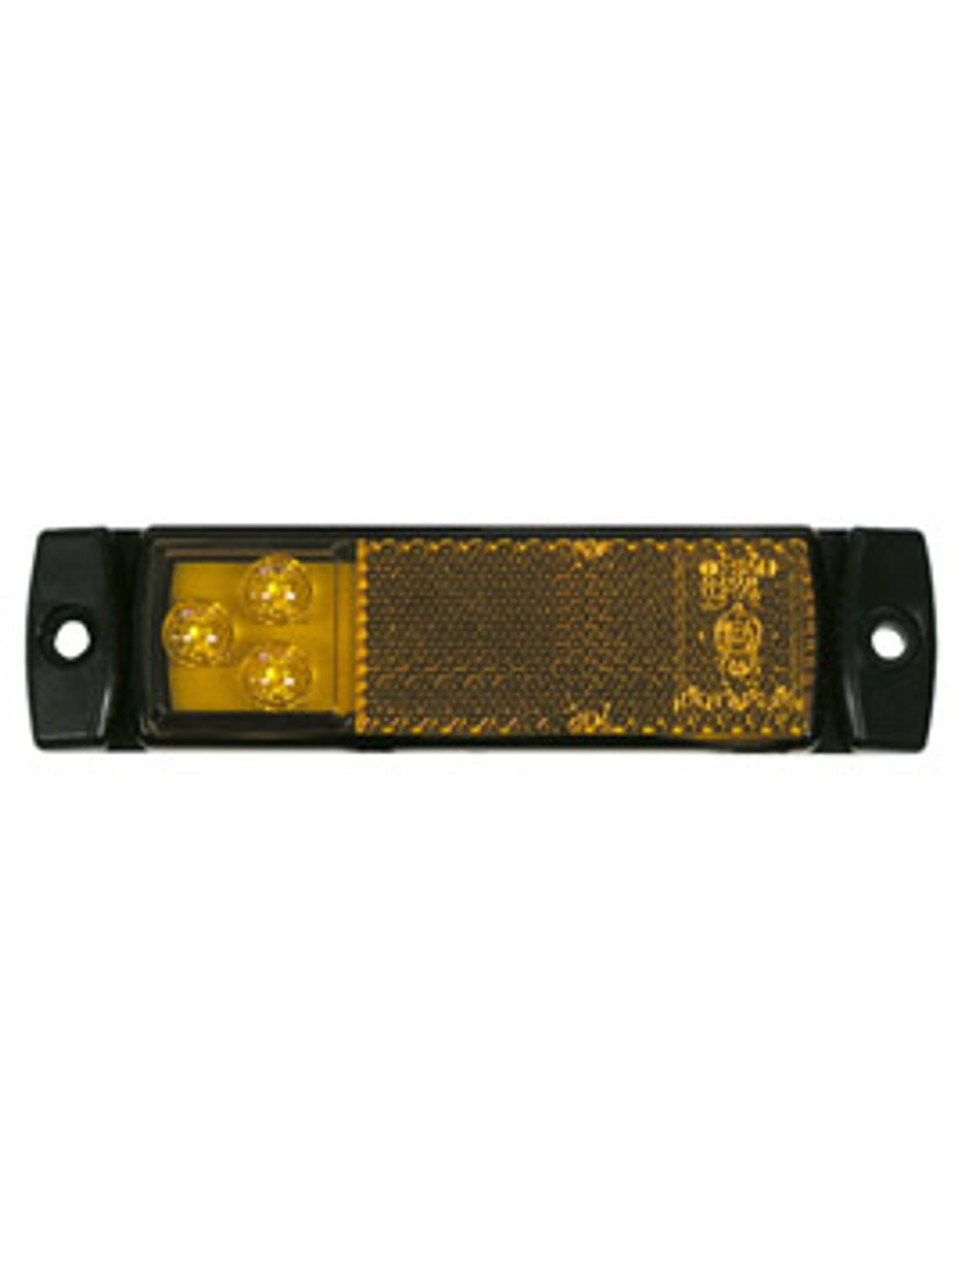 LED1203A3 --- Rectangular Sealed LED Clearance/Side Marker Light with Reflex - 3 Diodes